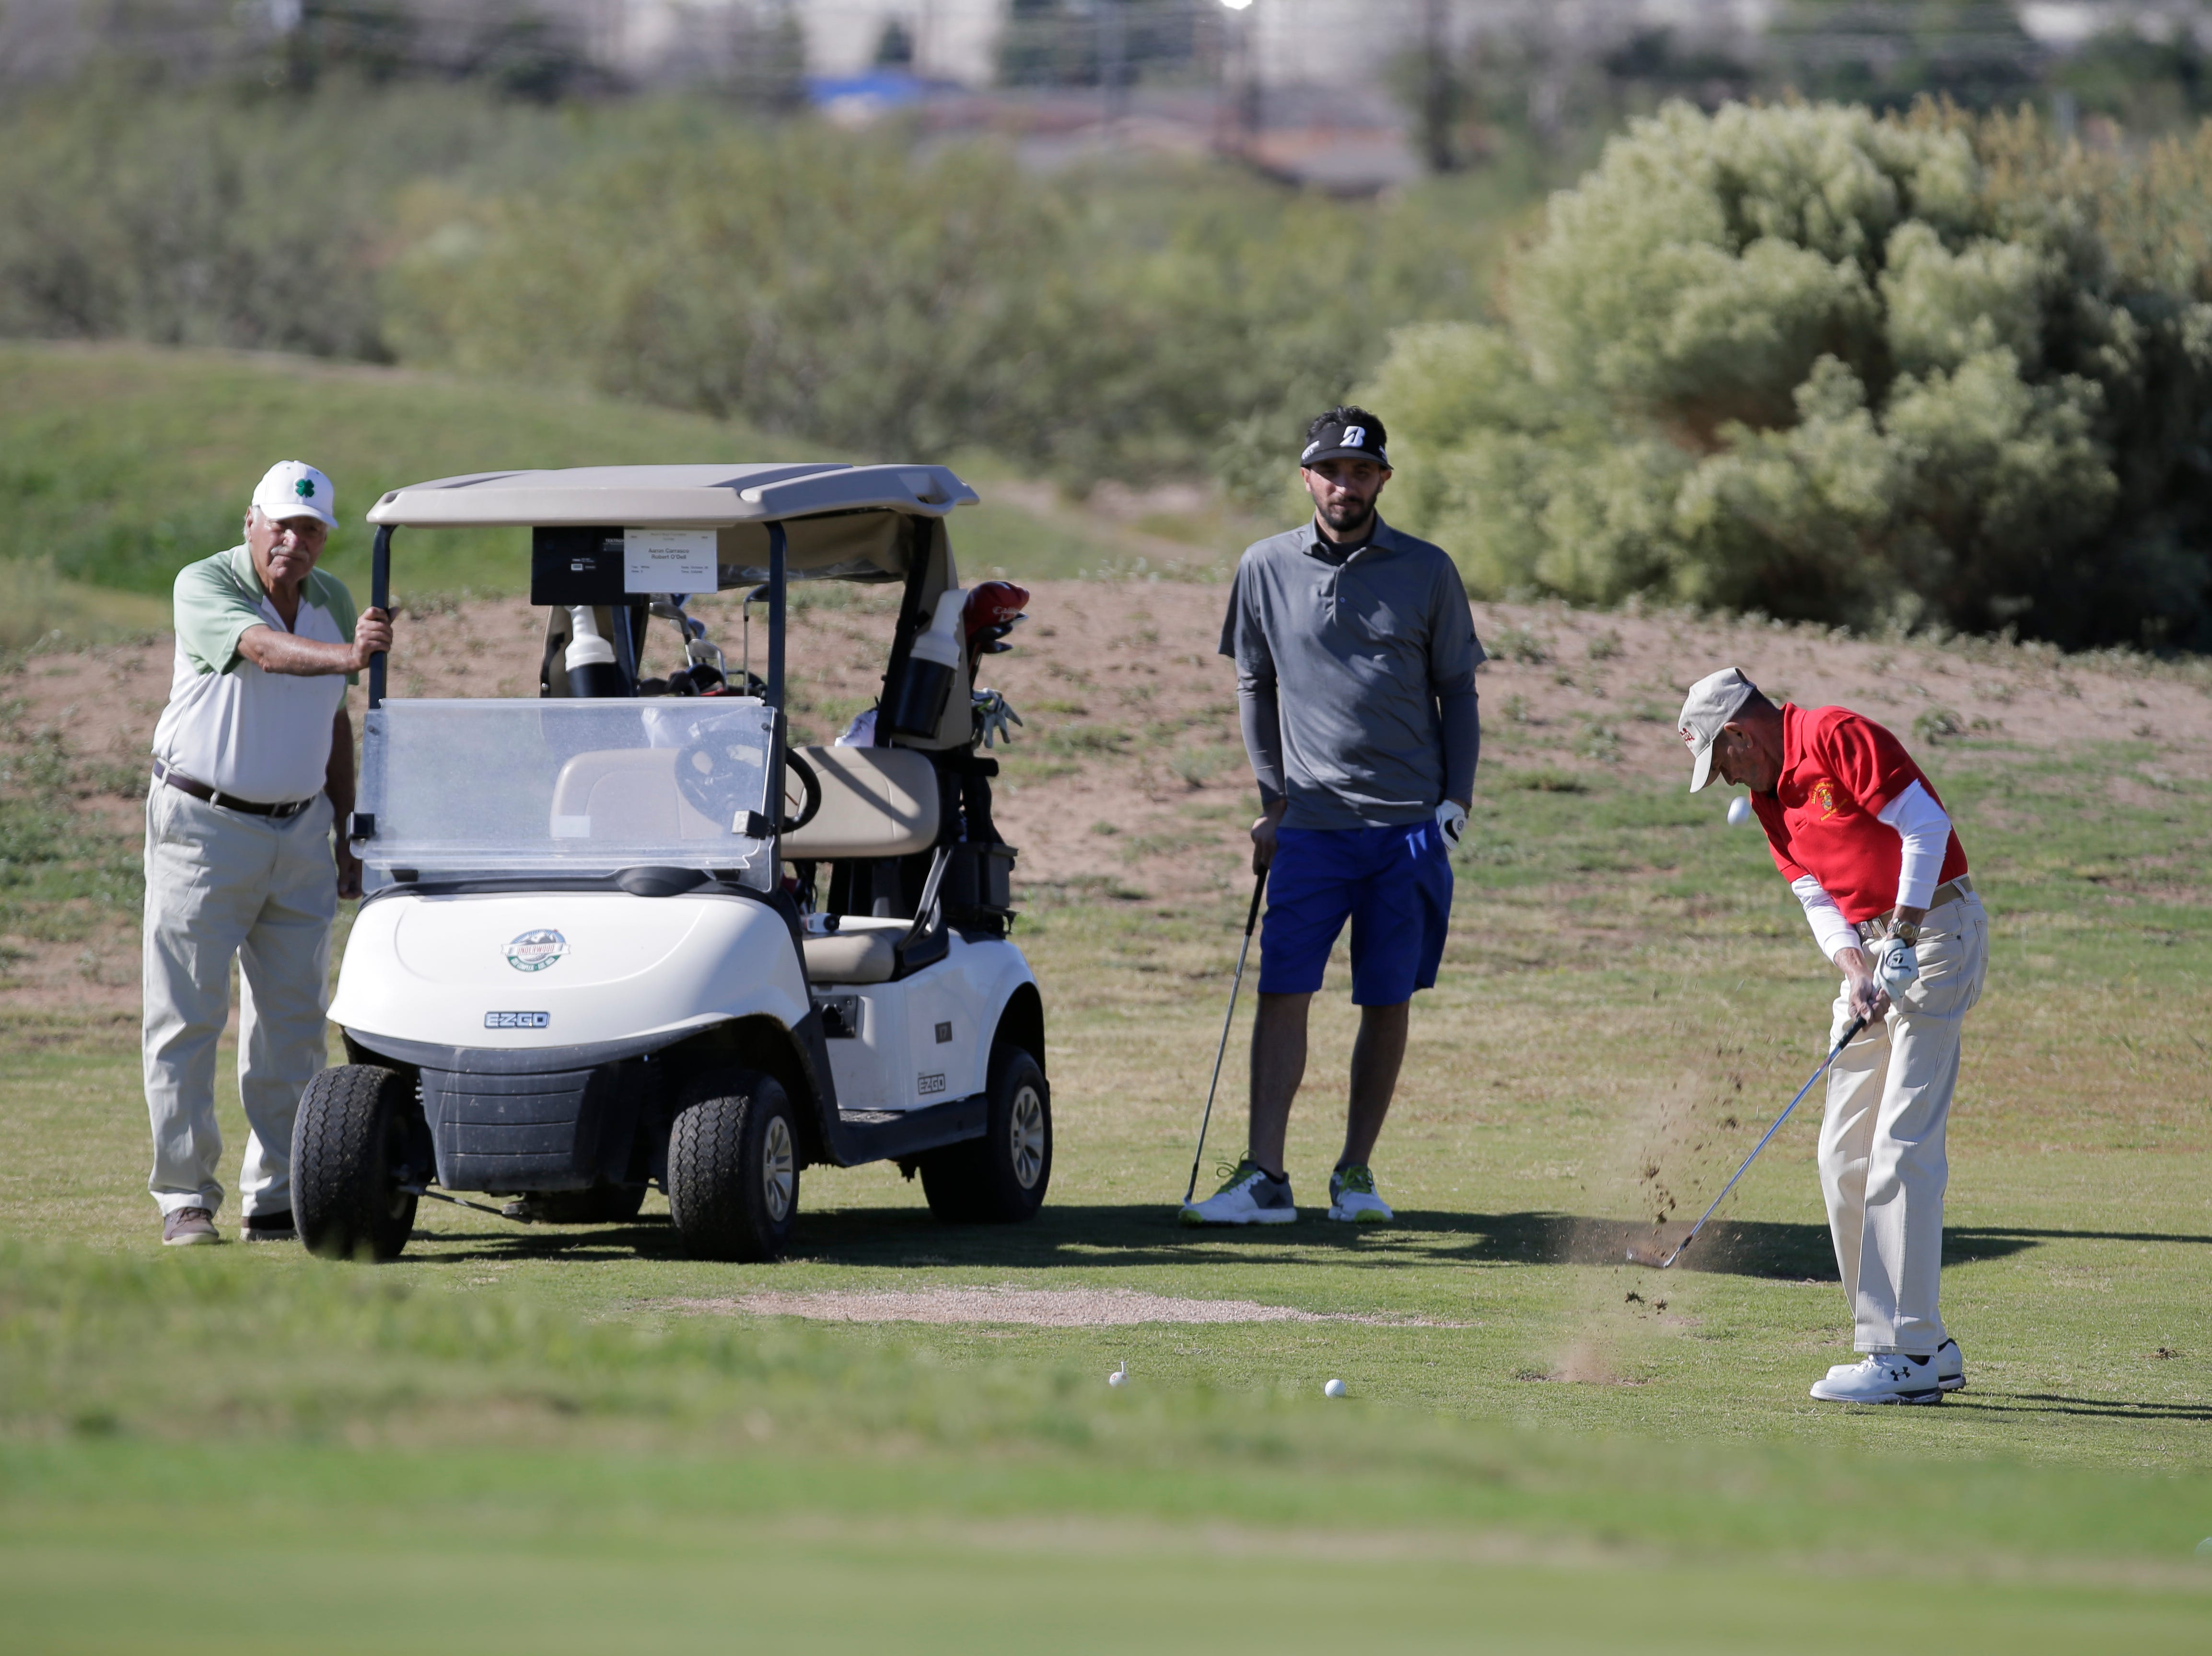 Members of the Moy's Boys Jefferson Foxes held their 8th Annual, 2018 Youth Benefit Golf Tournament at Ft. Bliss Underwood Golf Course. All funds raised by the group will benefit disadvantaged students currently enrolled in elementary, middle and high schools in the Thomas Jefferson/Silva Magnet High School area.